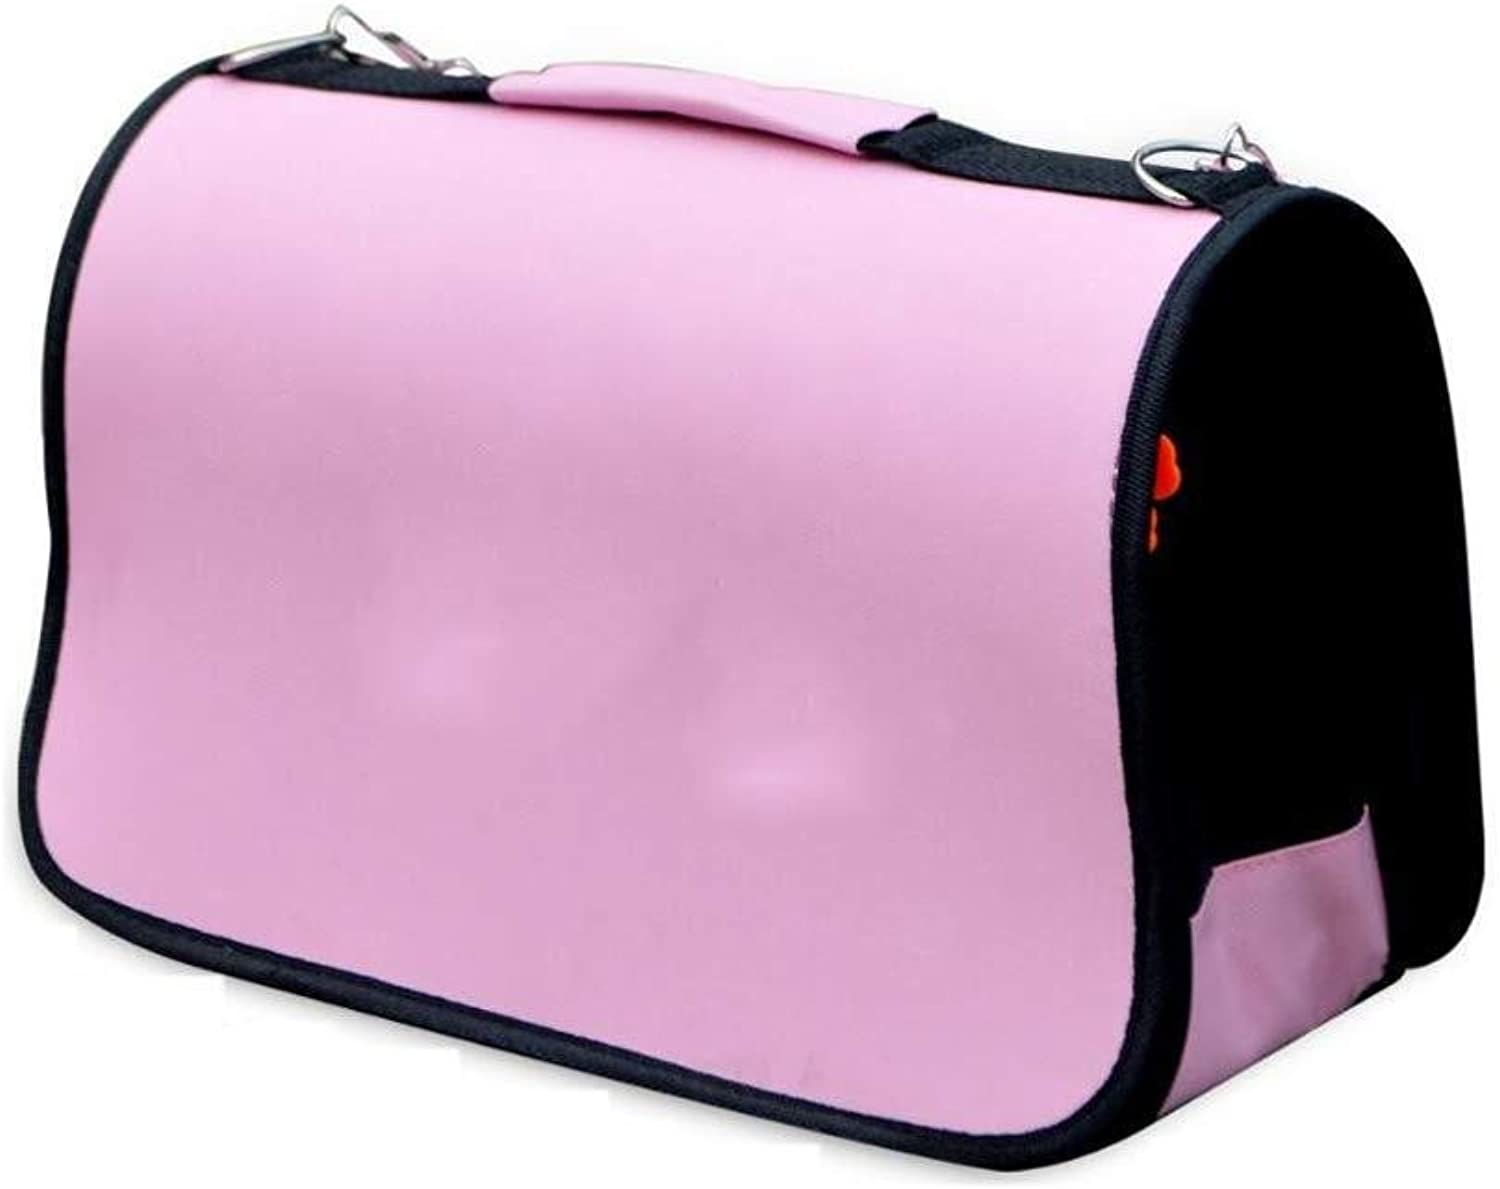 Pet Backpack Out Of The Foldable Portable Portable Pet Cage, Suitable For Cats, Dogs And Other Pets (pink)